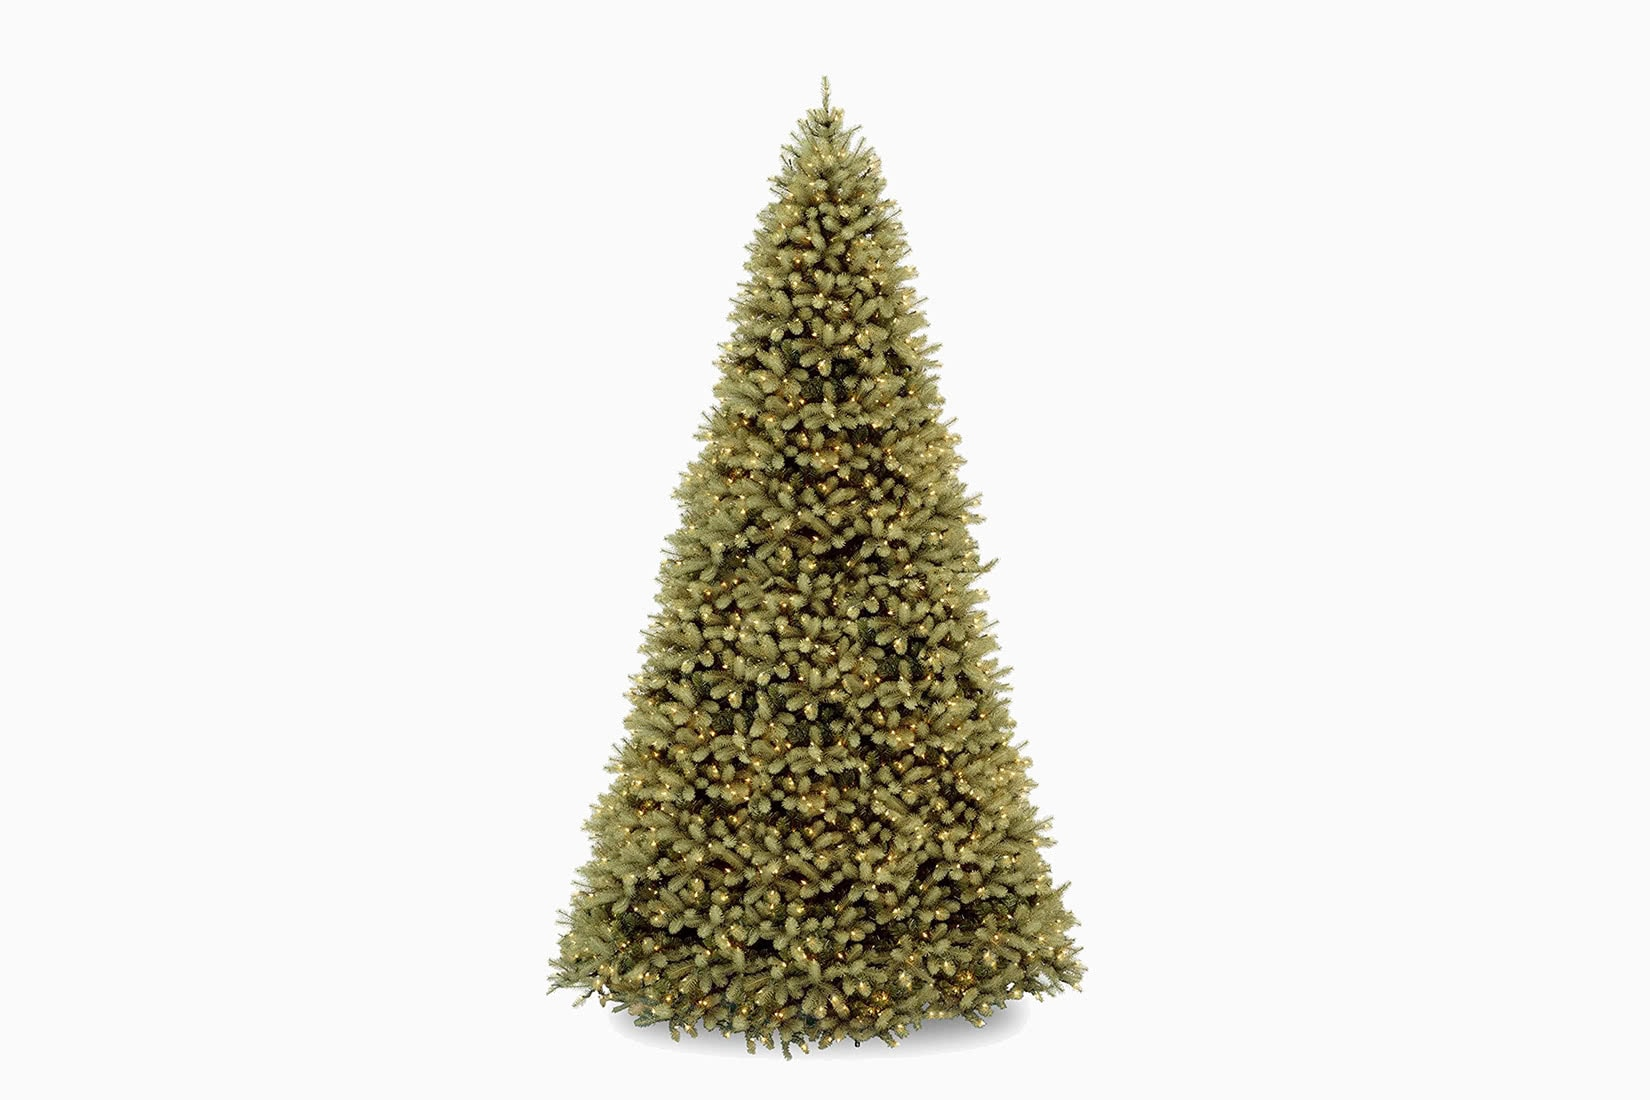 best artificial Christmas tree most expensive national tree company review - Luxe Digital